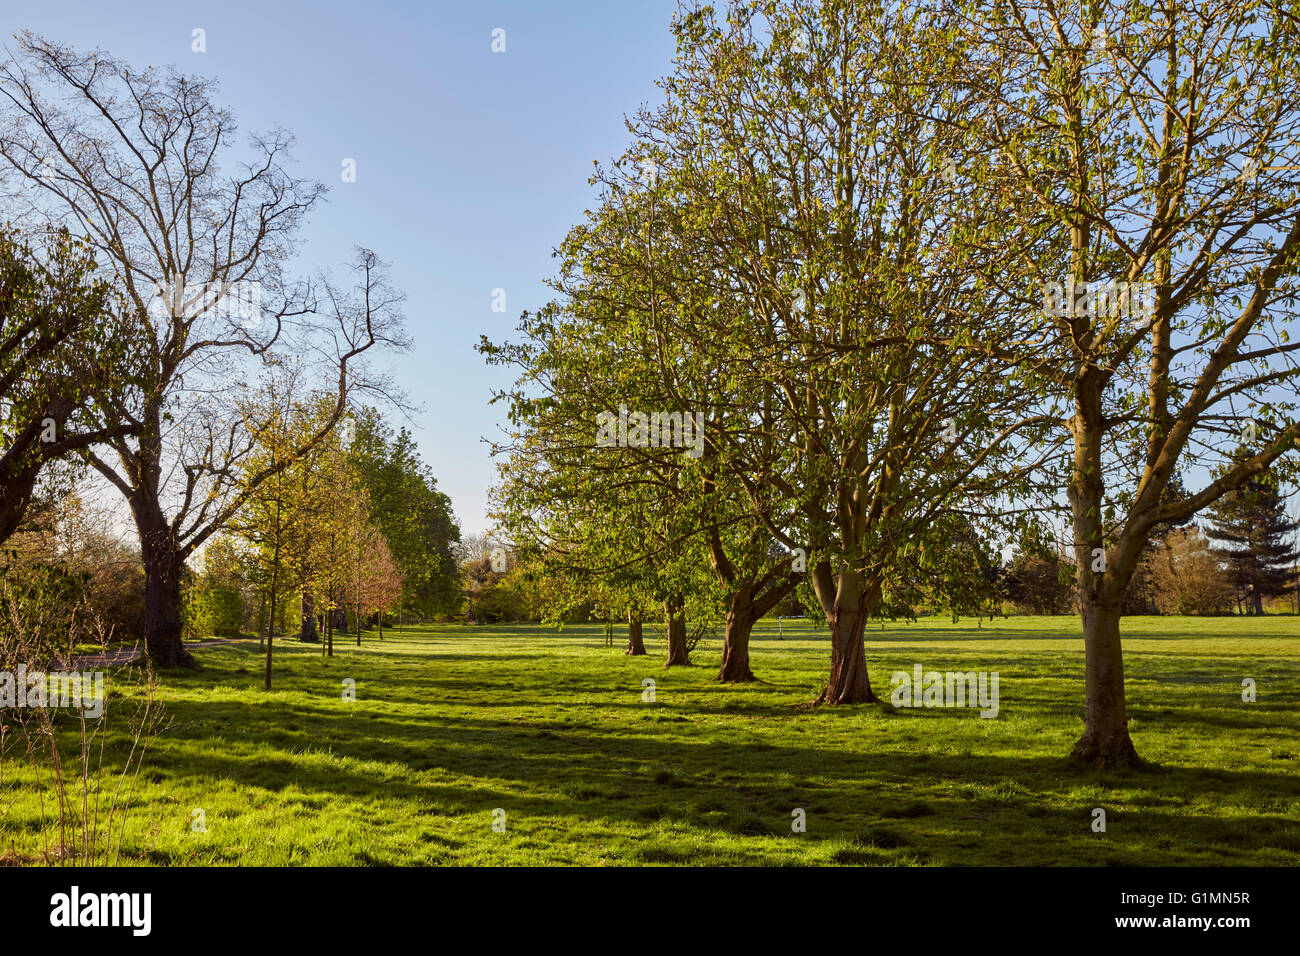 Hurst Meadows, West Molesey, Surrey, England. - Stock Image